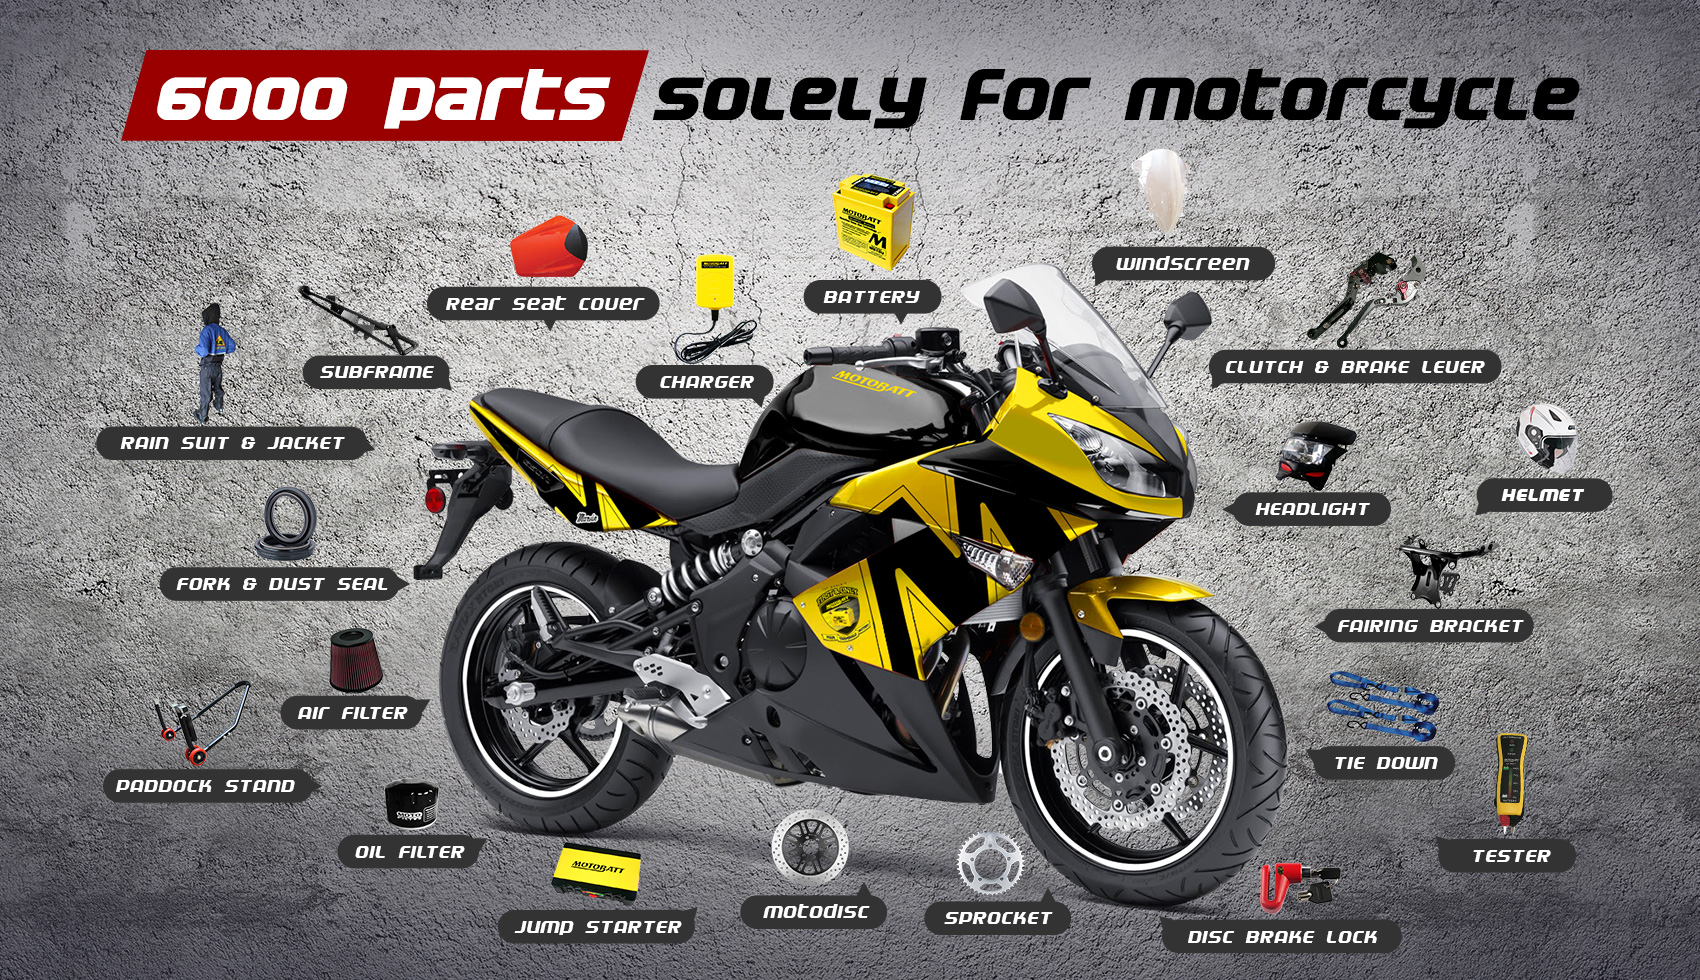 6000part motorcycle